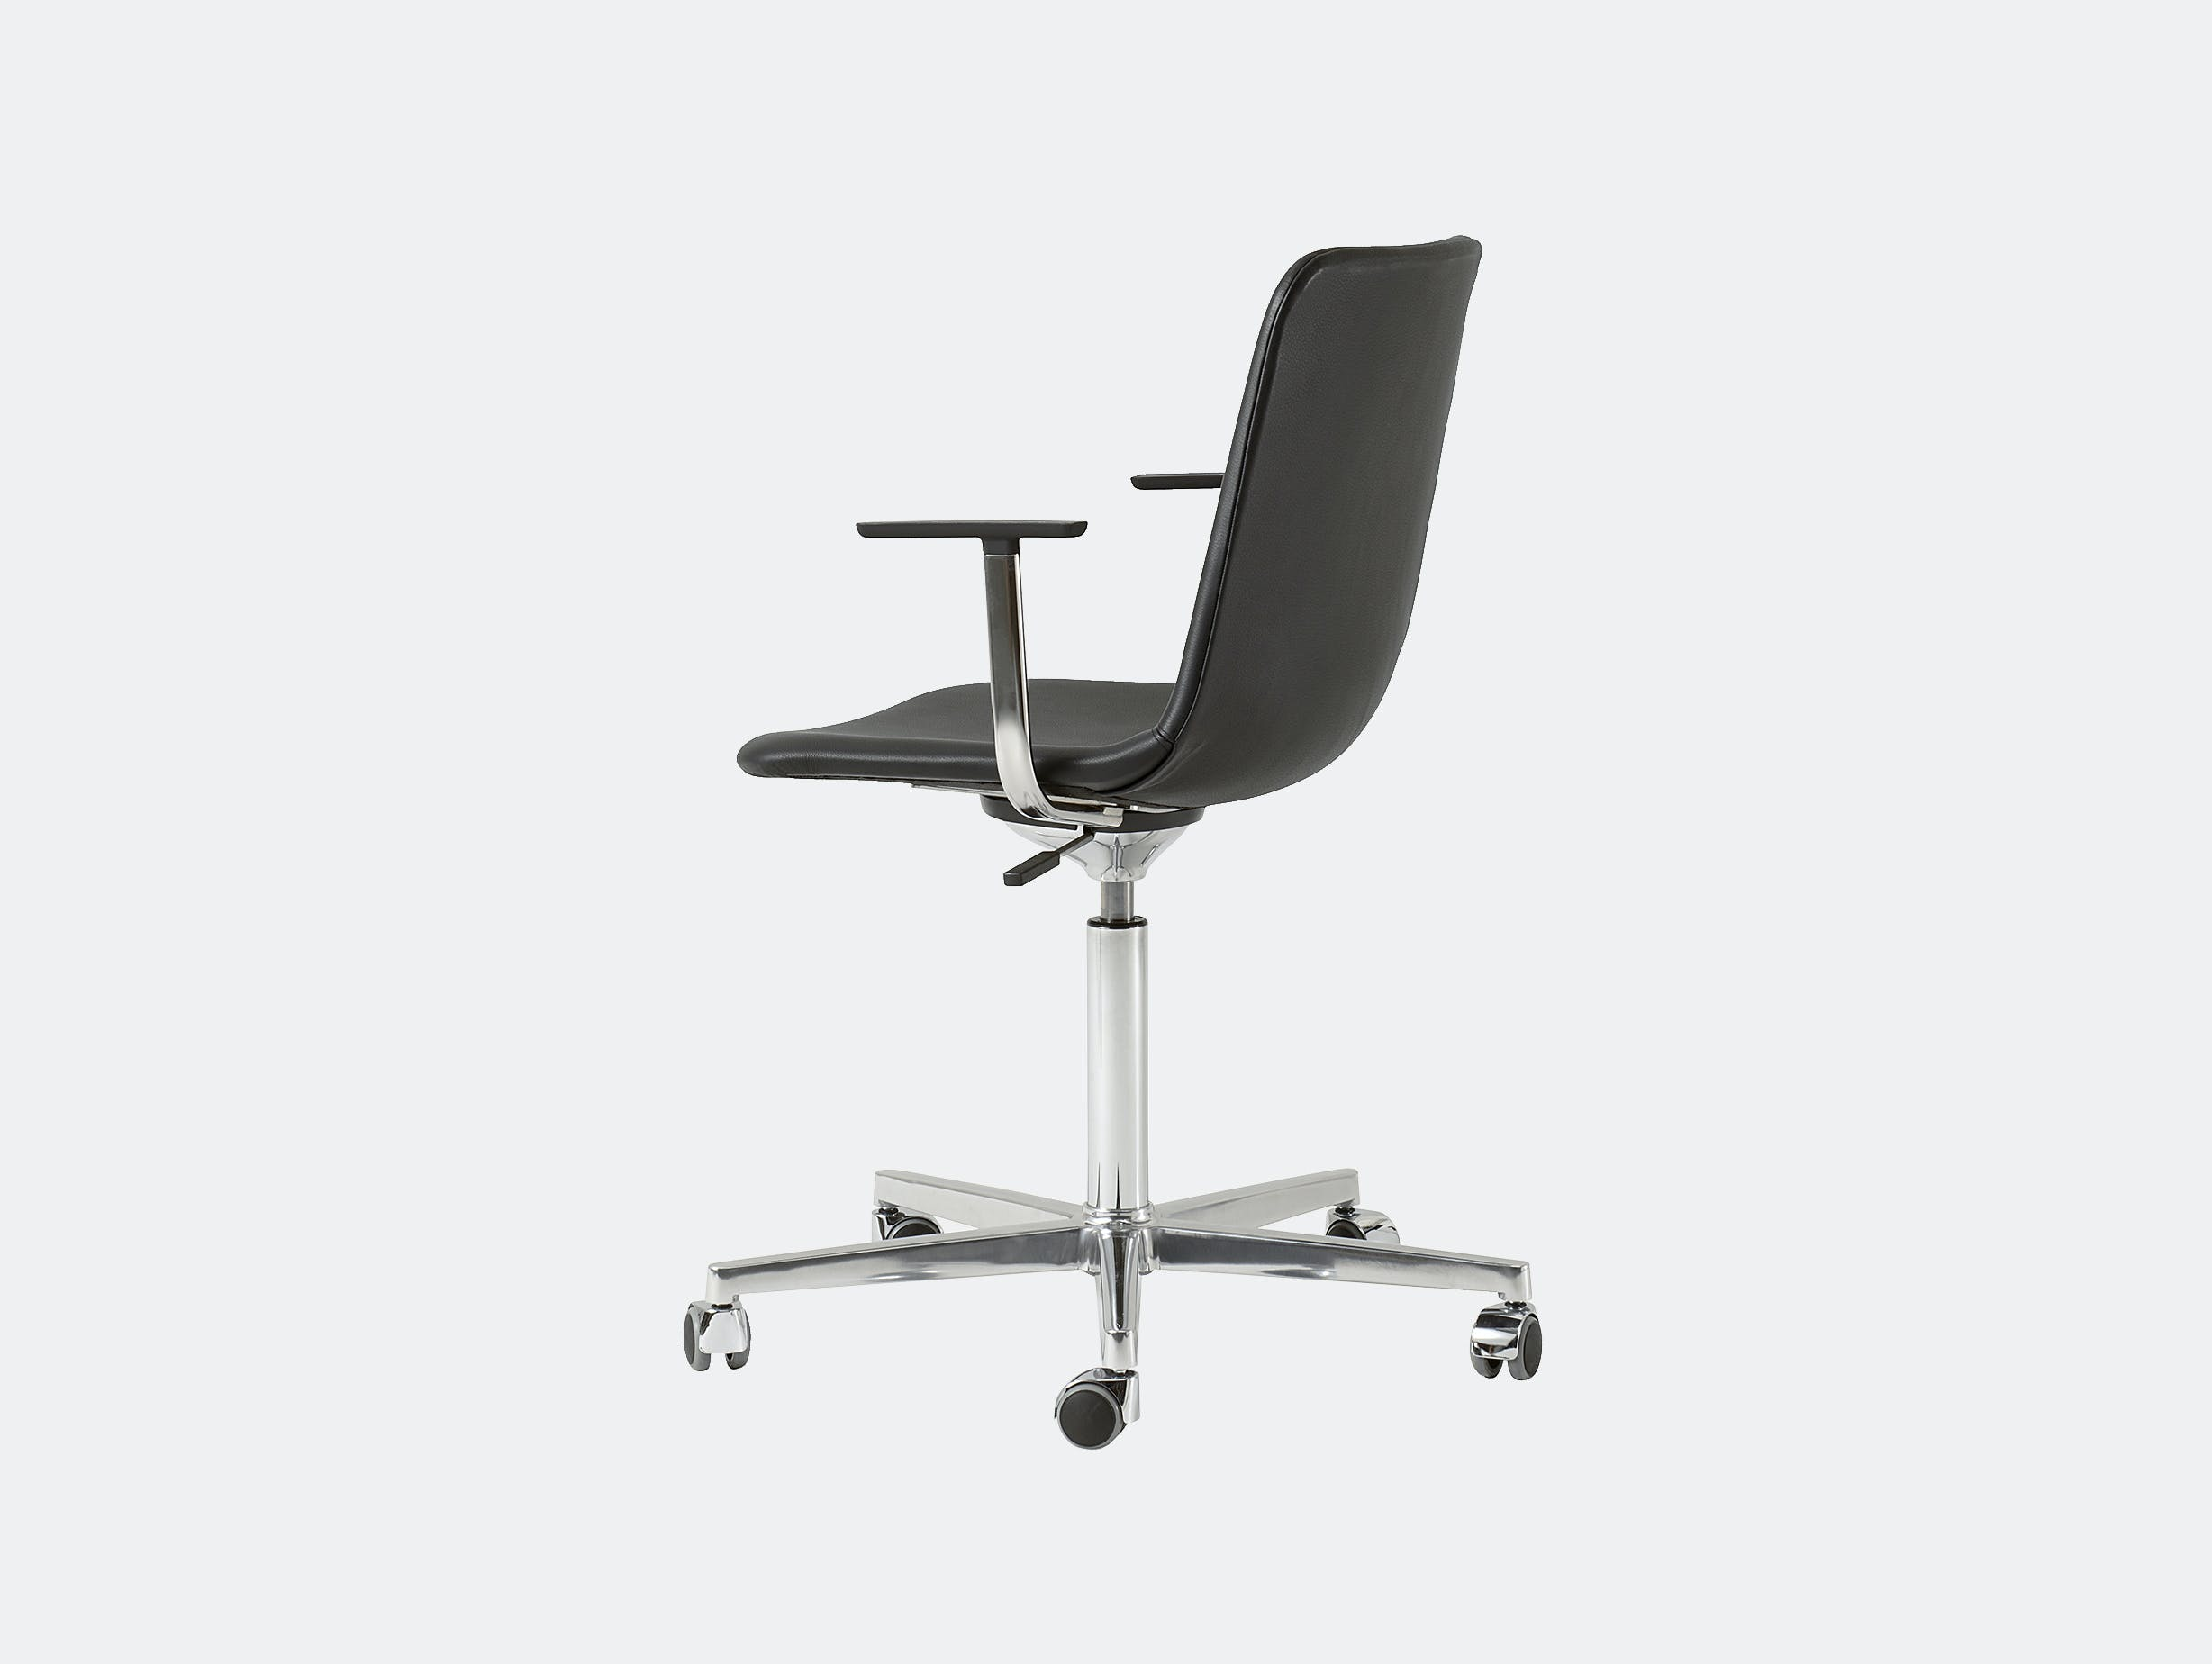 Fredericia pato chair swivel castor base 3